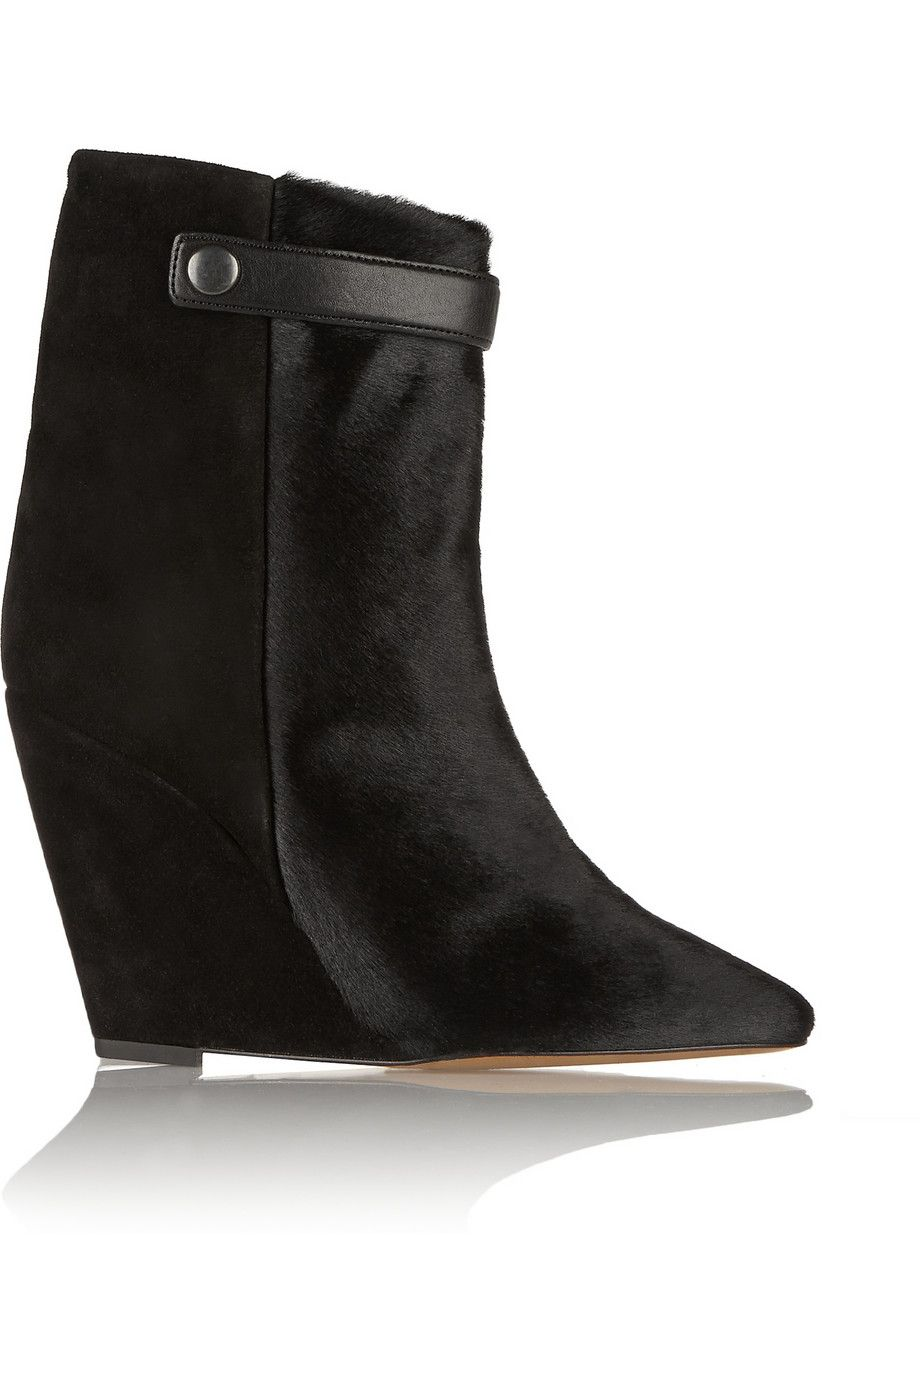 Isabel Marant Ponyhair Suede Wedges sale clearance store tzvvBw